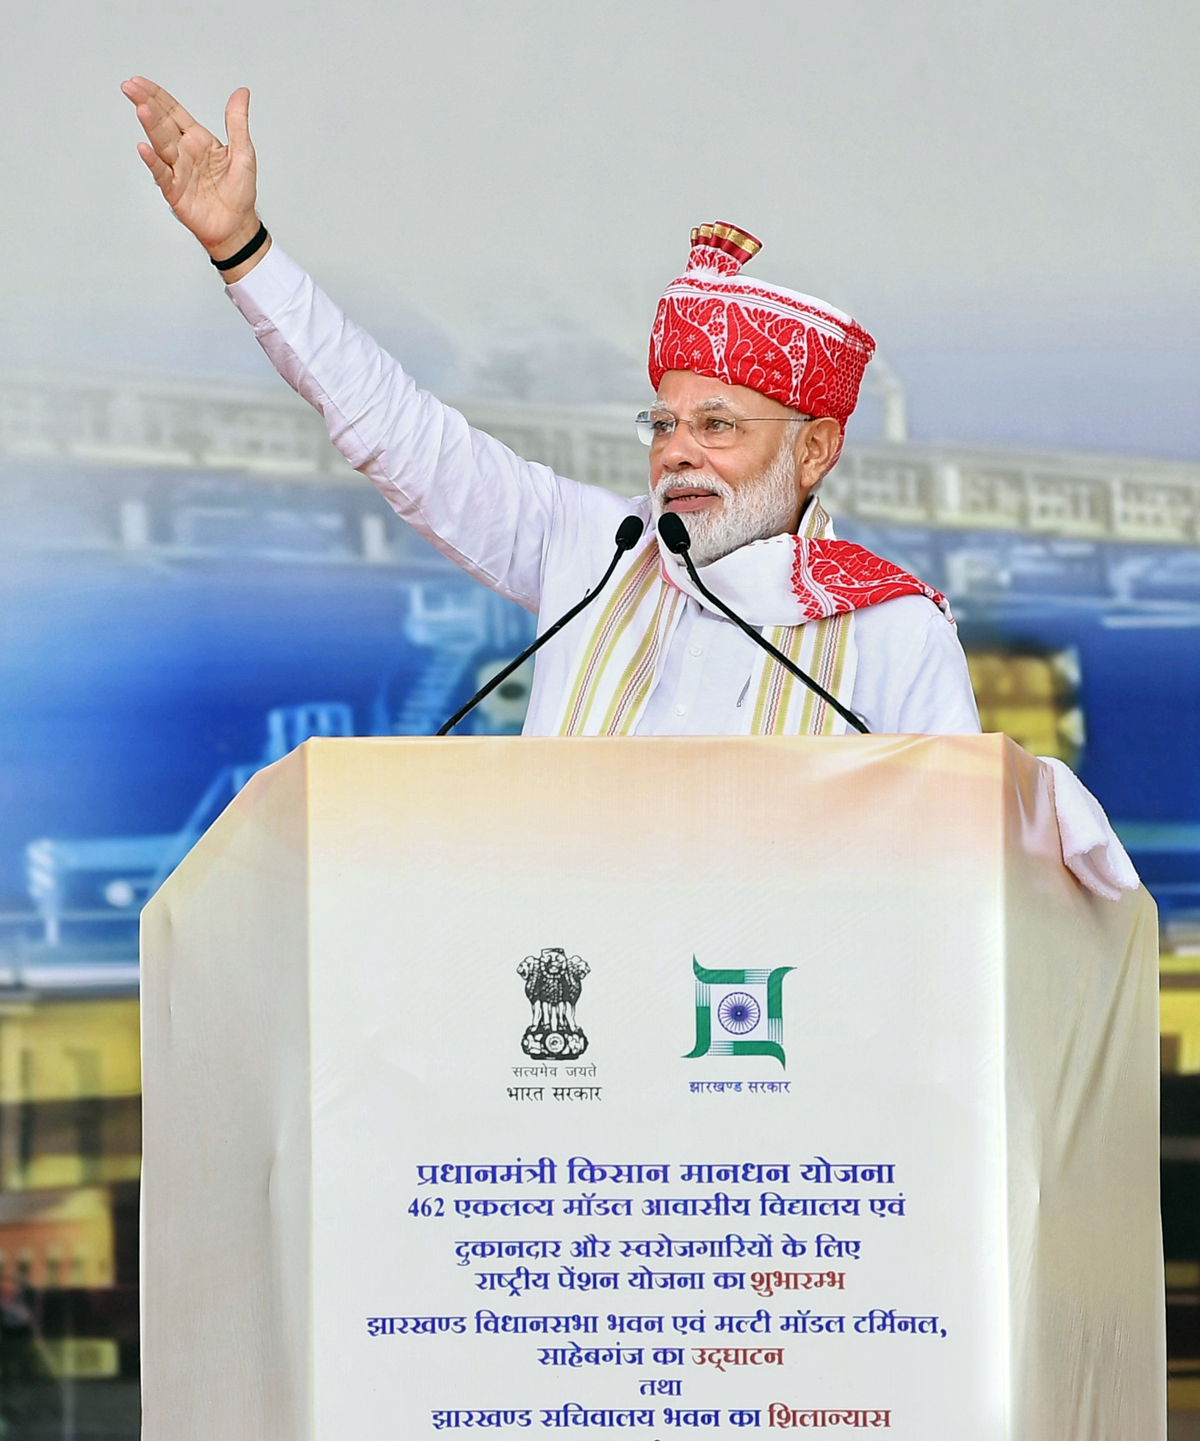 Prime Minister, Narendra Modi addressing at the inauguration of various development projects, in Ranchi, Jharkhand on Thursday.